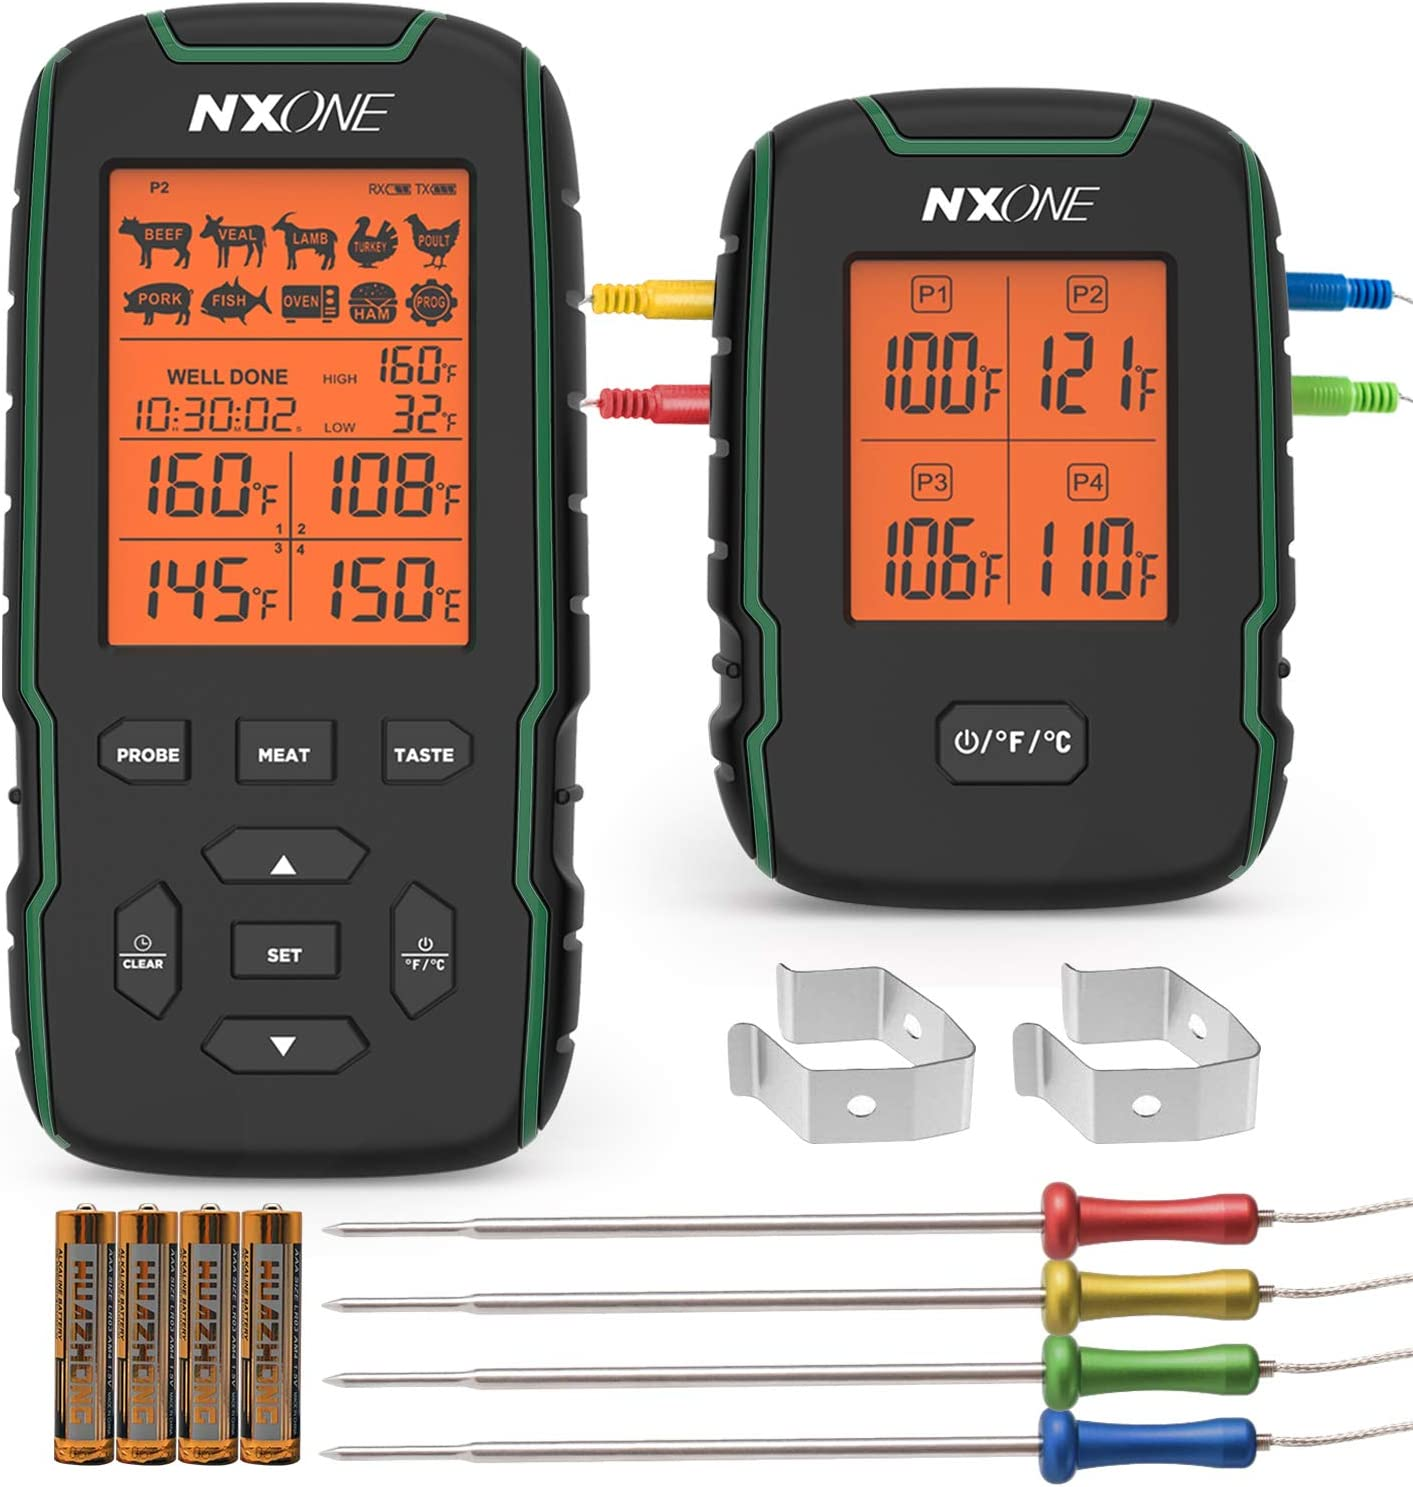 NXONE Wireless Meat Thermometer, 500FT Digital Meat Thermometer for Grilling, Accurate & Fast Remote Smoker Thermometer with 4 probes, Alert, Timer, Cooking Thermometer for Smoker, Grill, BBQ, Oven